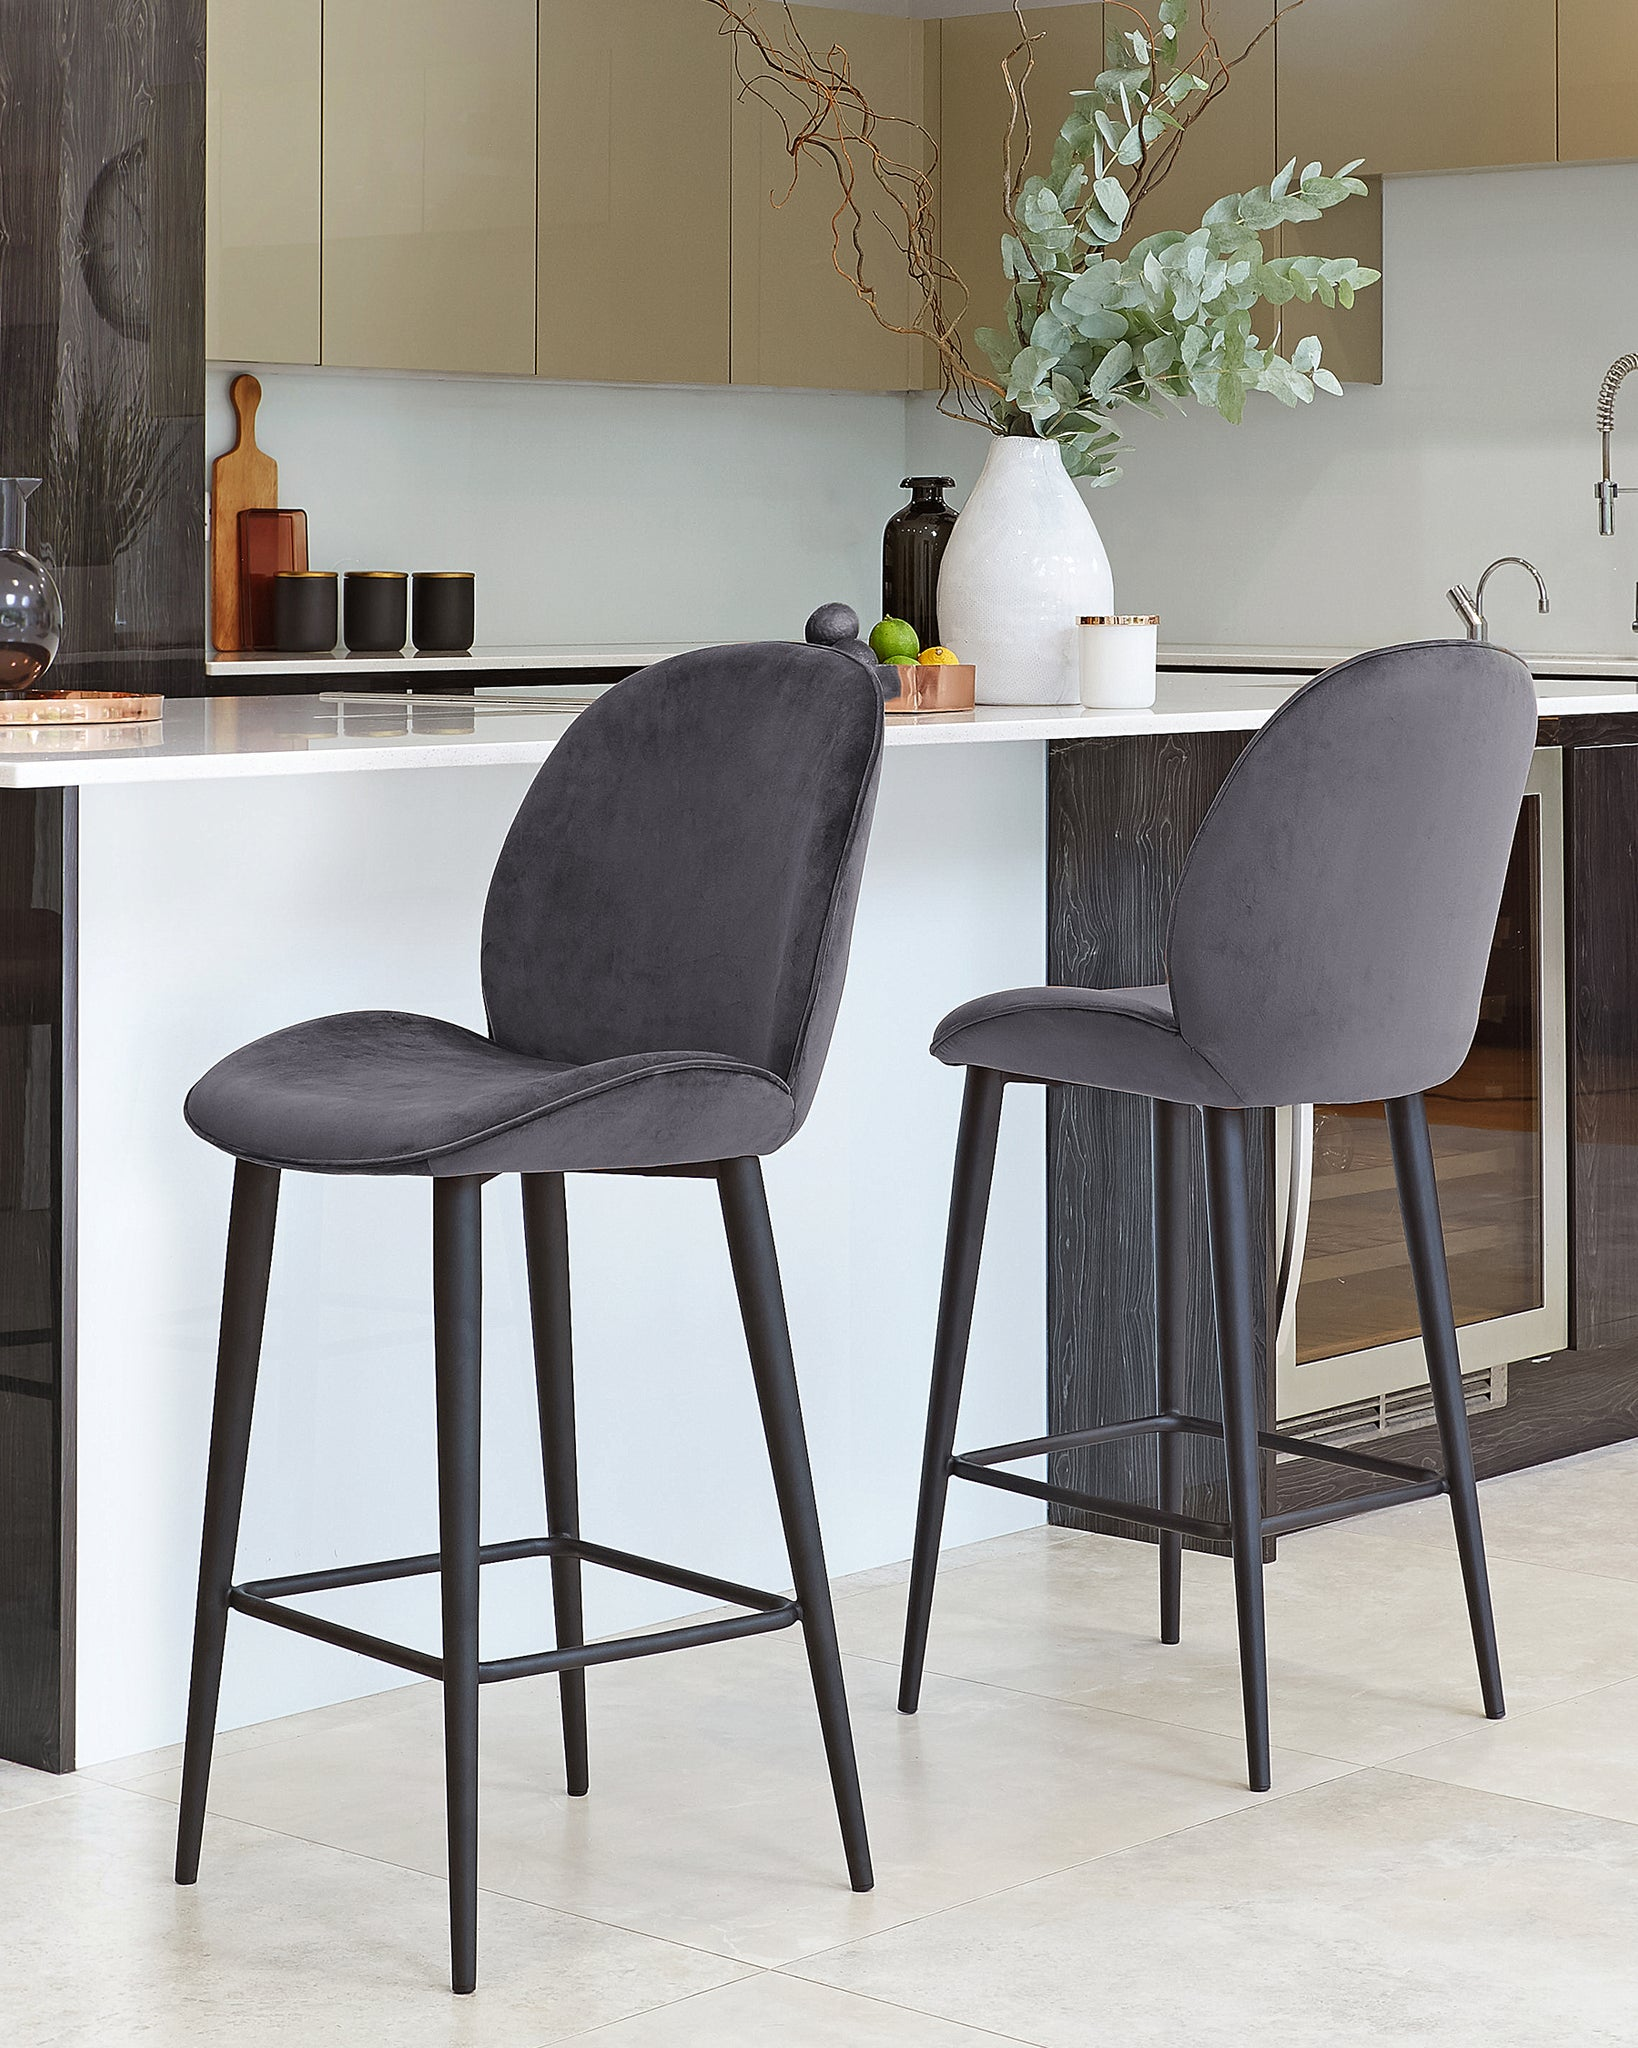 Picture of: Bar Stools Breakfast Bar Stools Kitchen Stools From Danetti